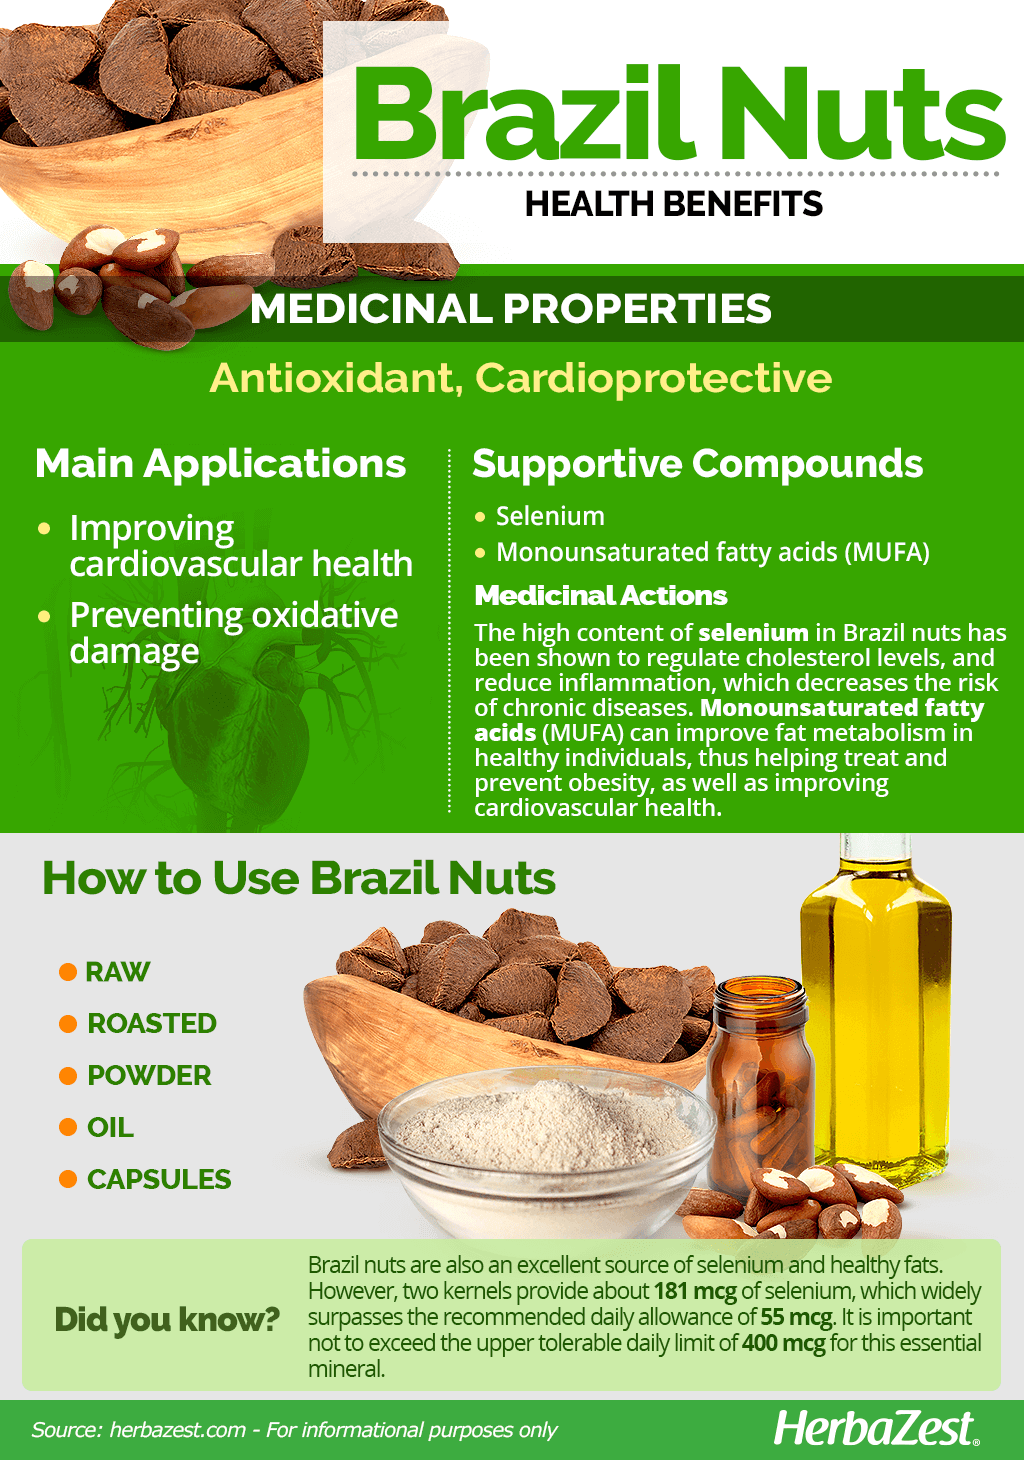 All About Brazil Nuts